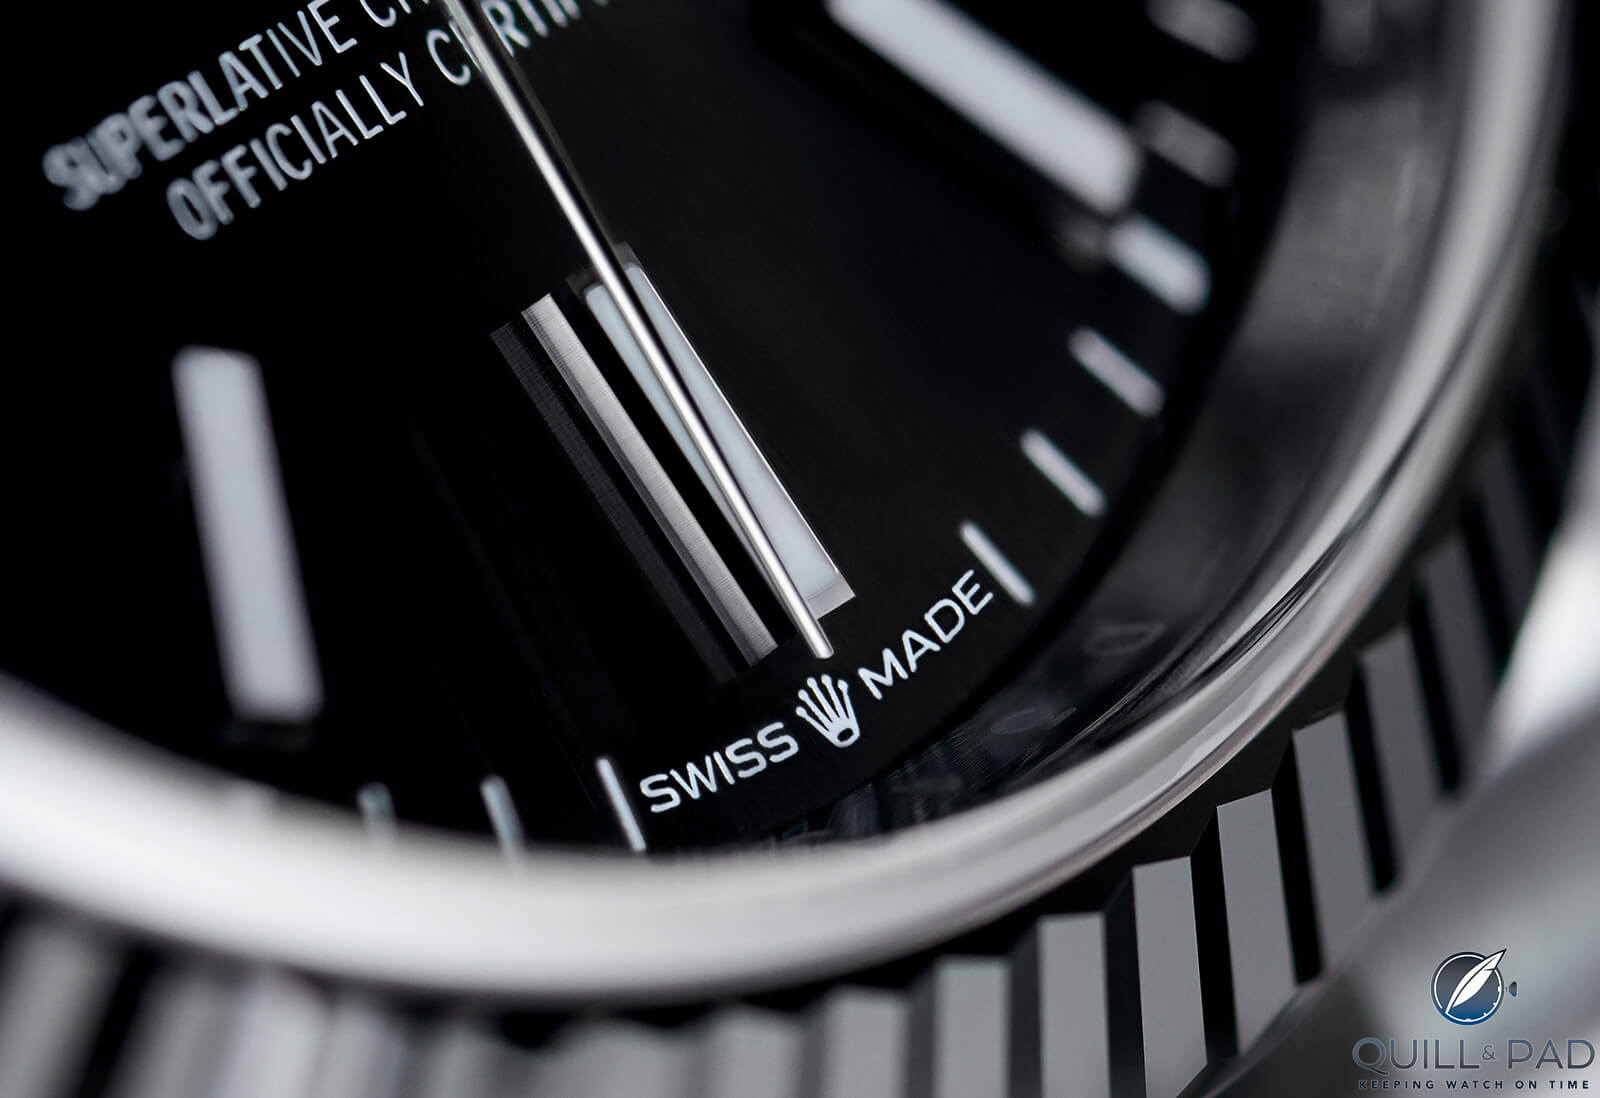 'Swiss Made' dial detail on the Rolex Datejust 36 Reference 126234